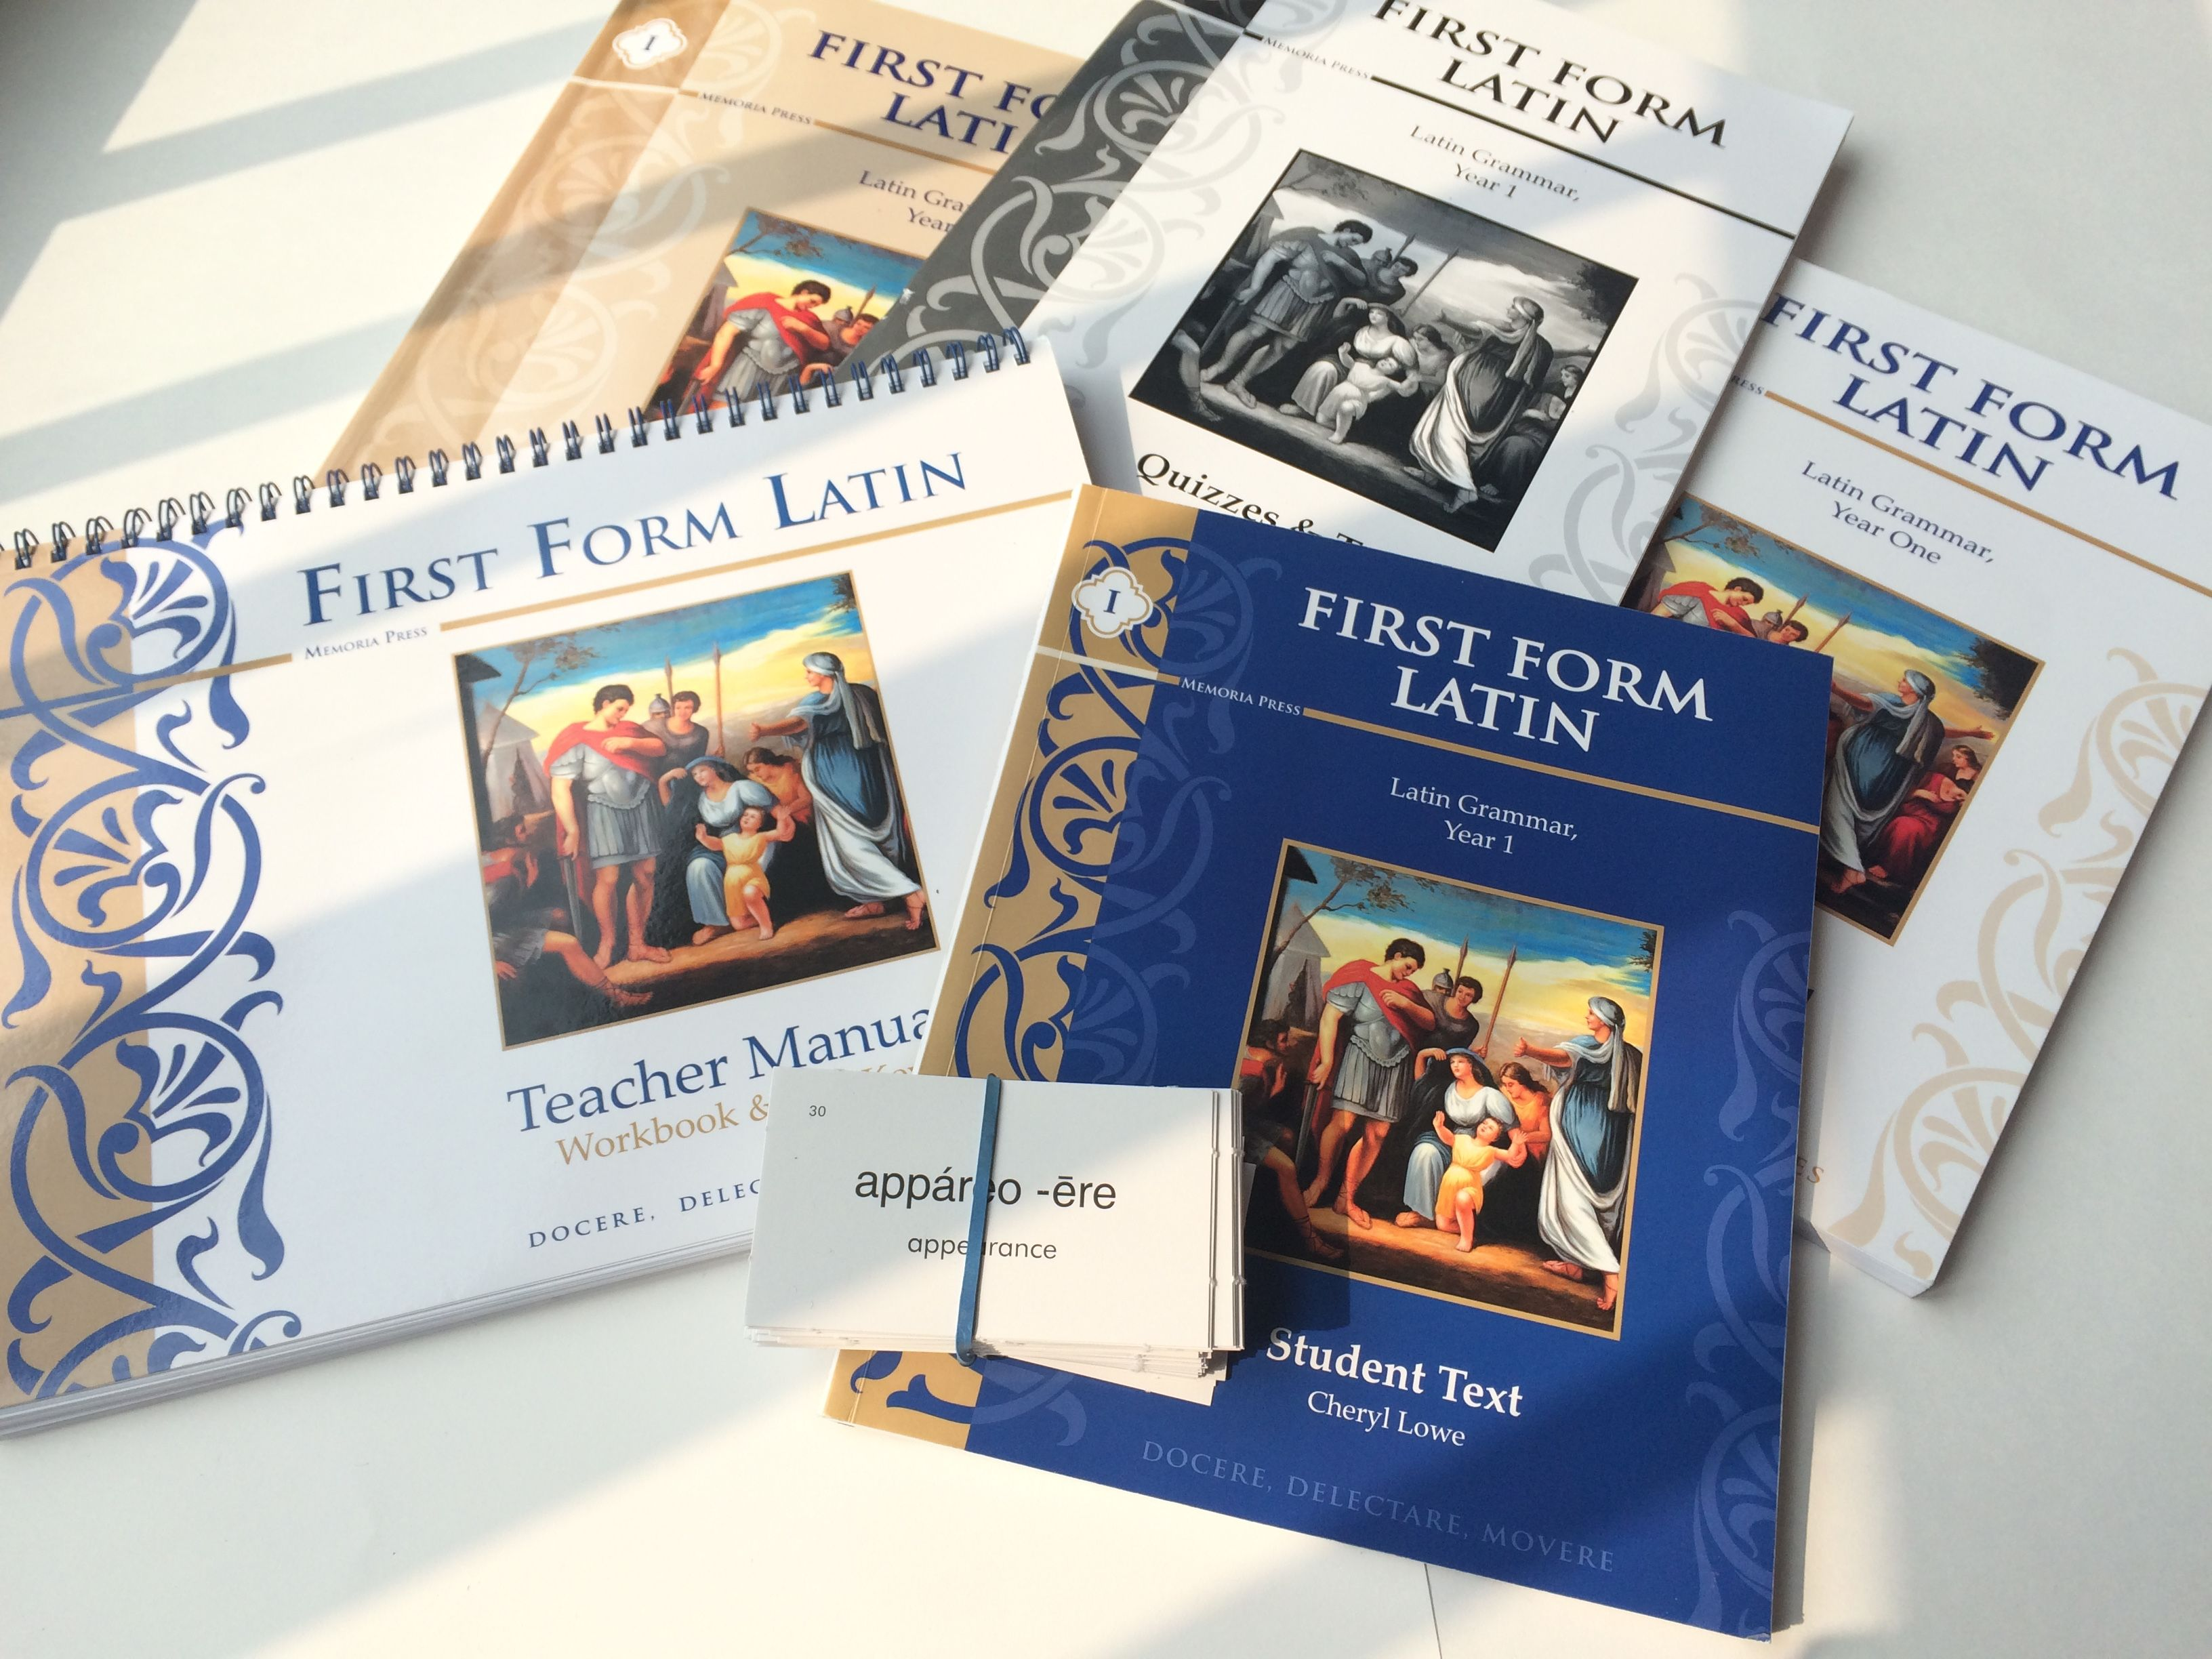 First Form Latin By Memoria Press